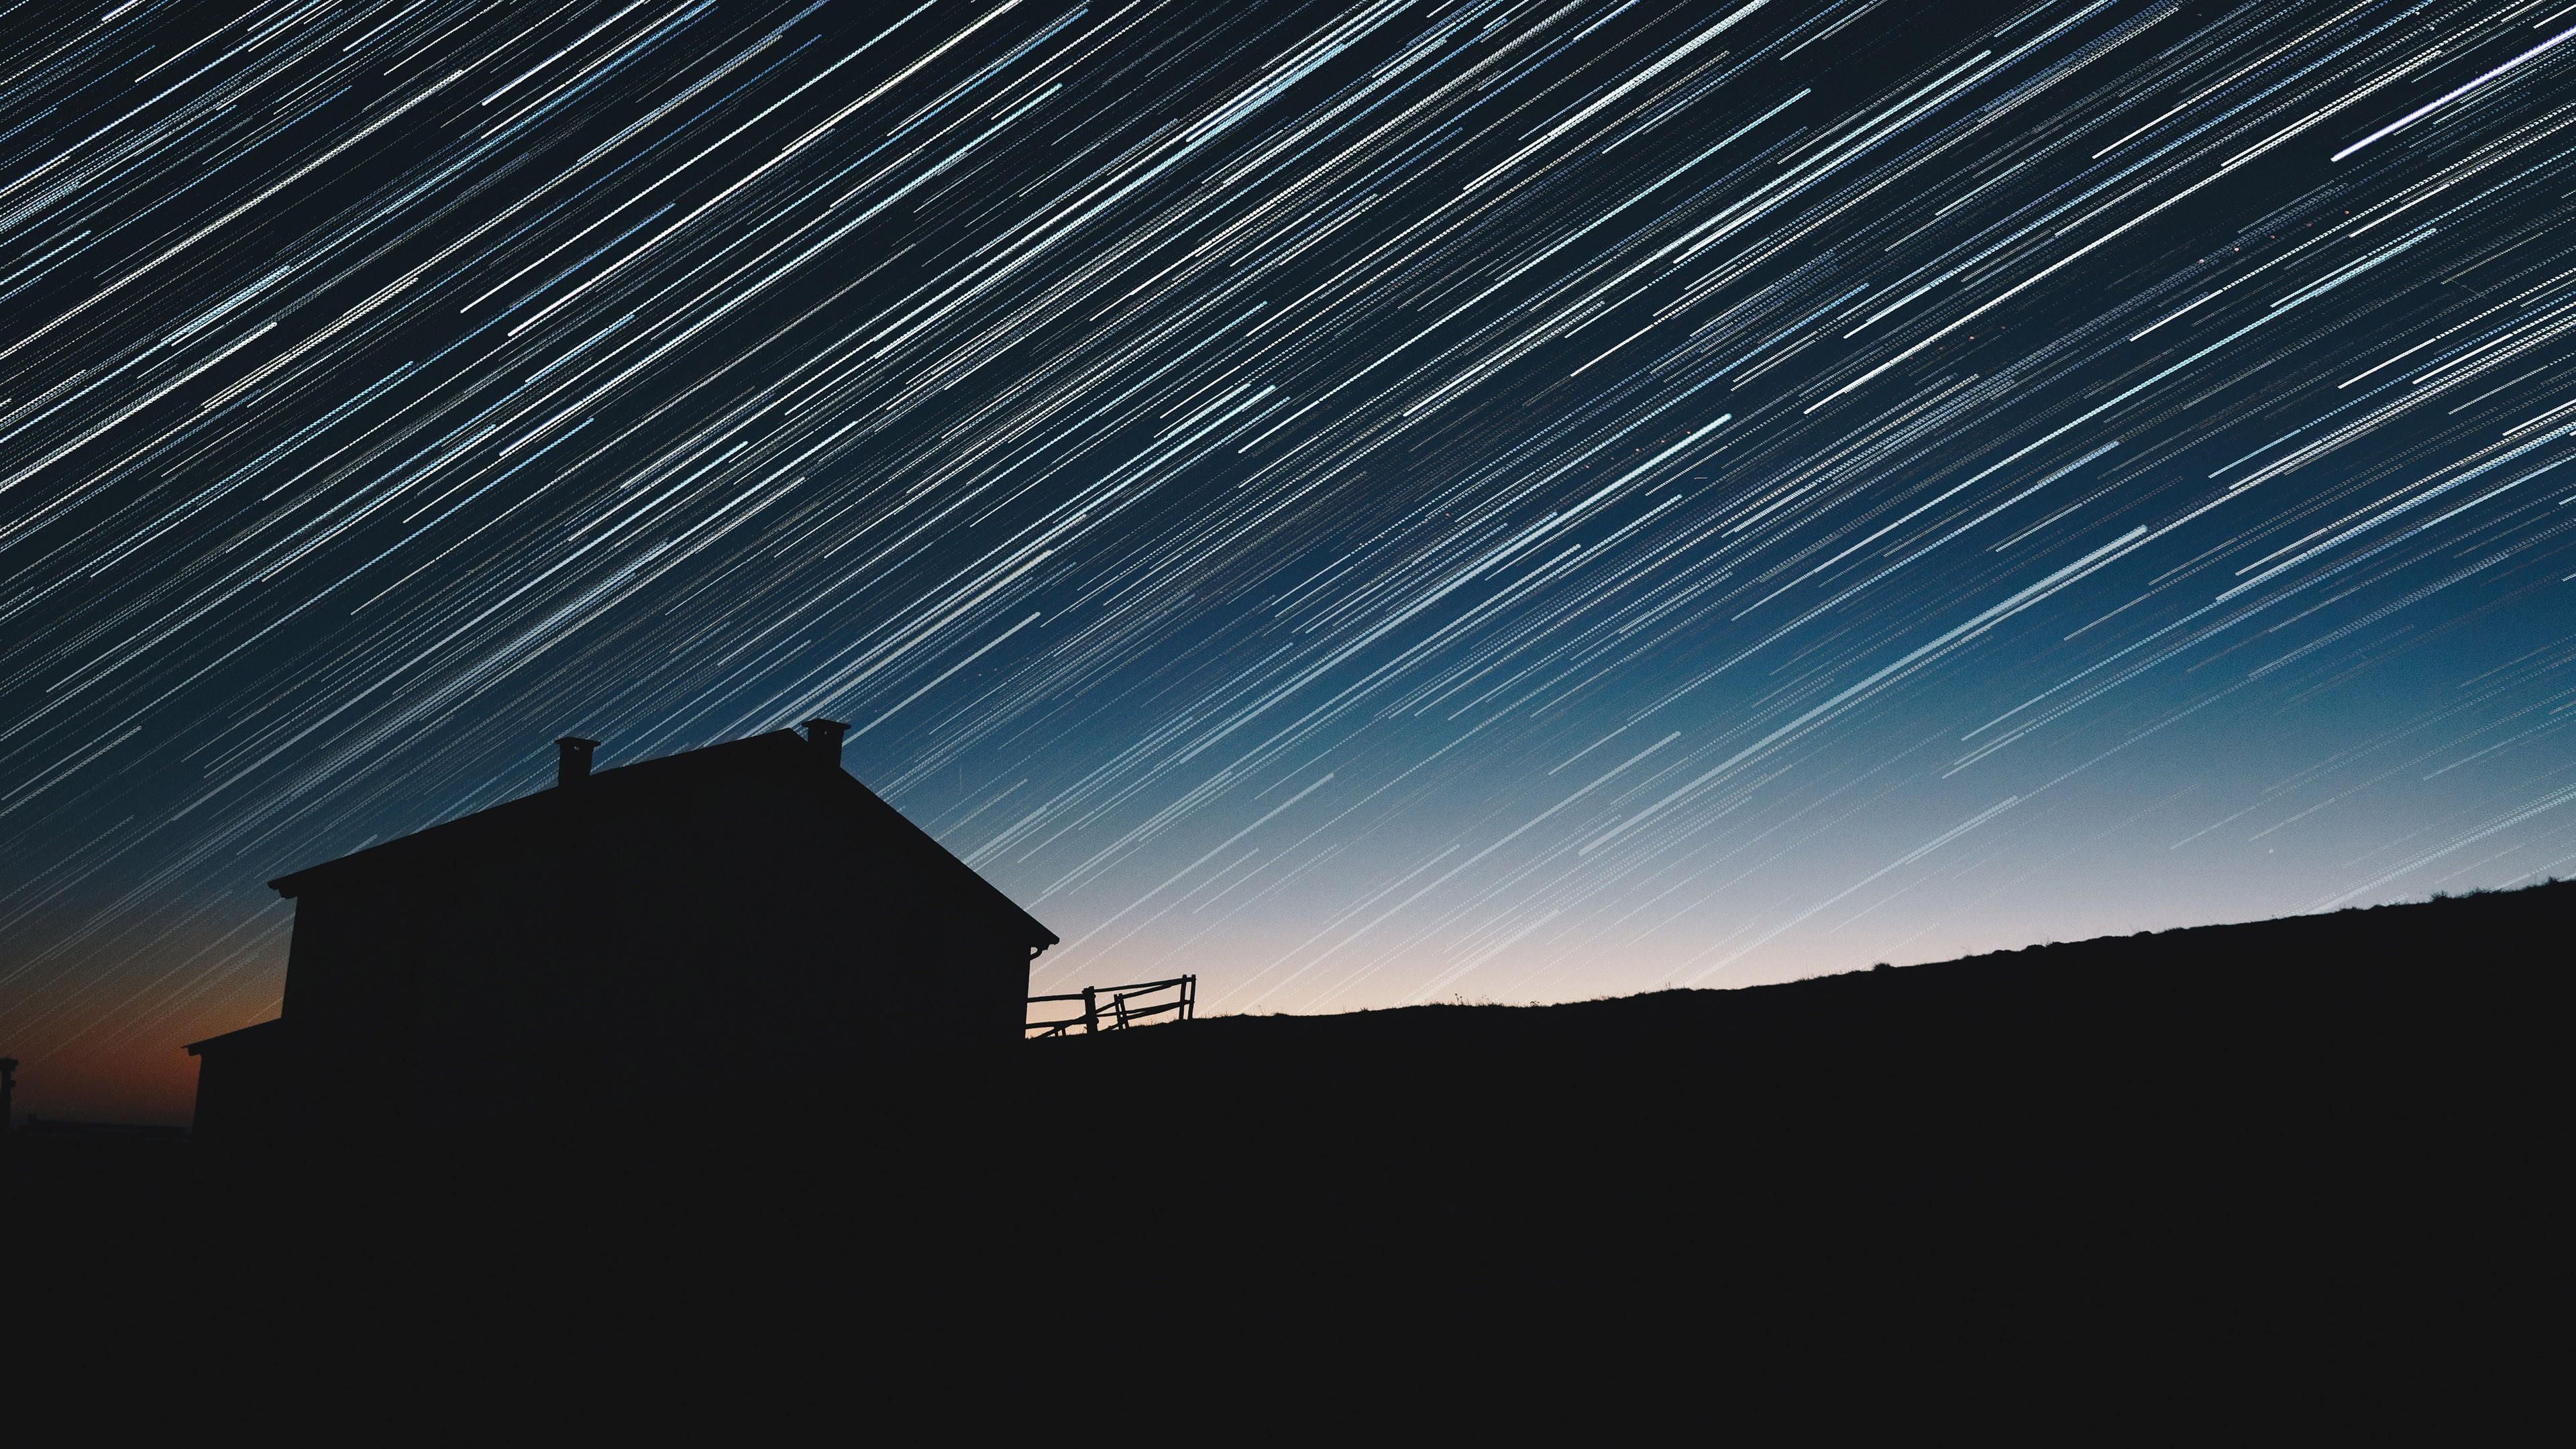 General 3840x2160 photography star trails silhouette sky house long exposure